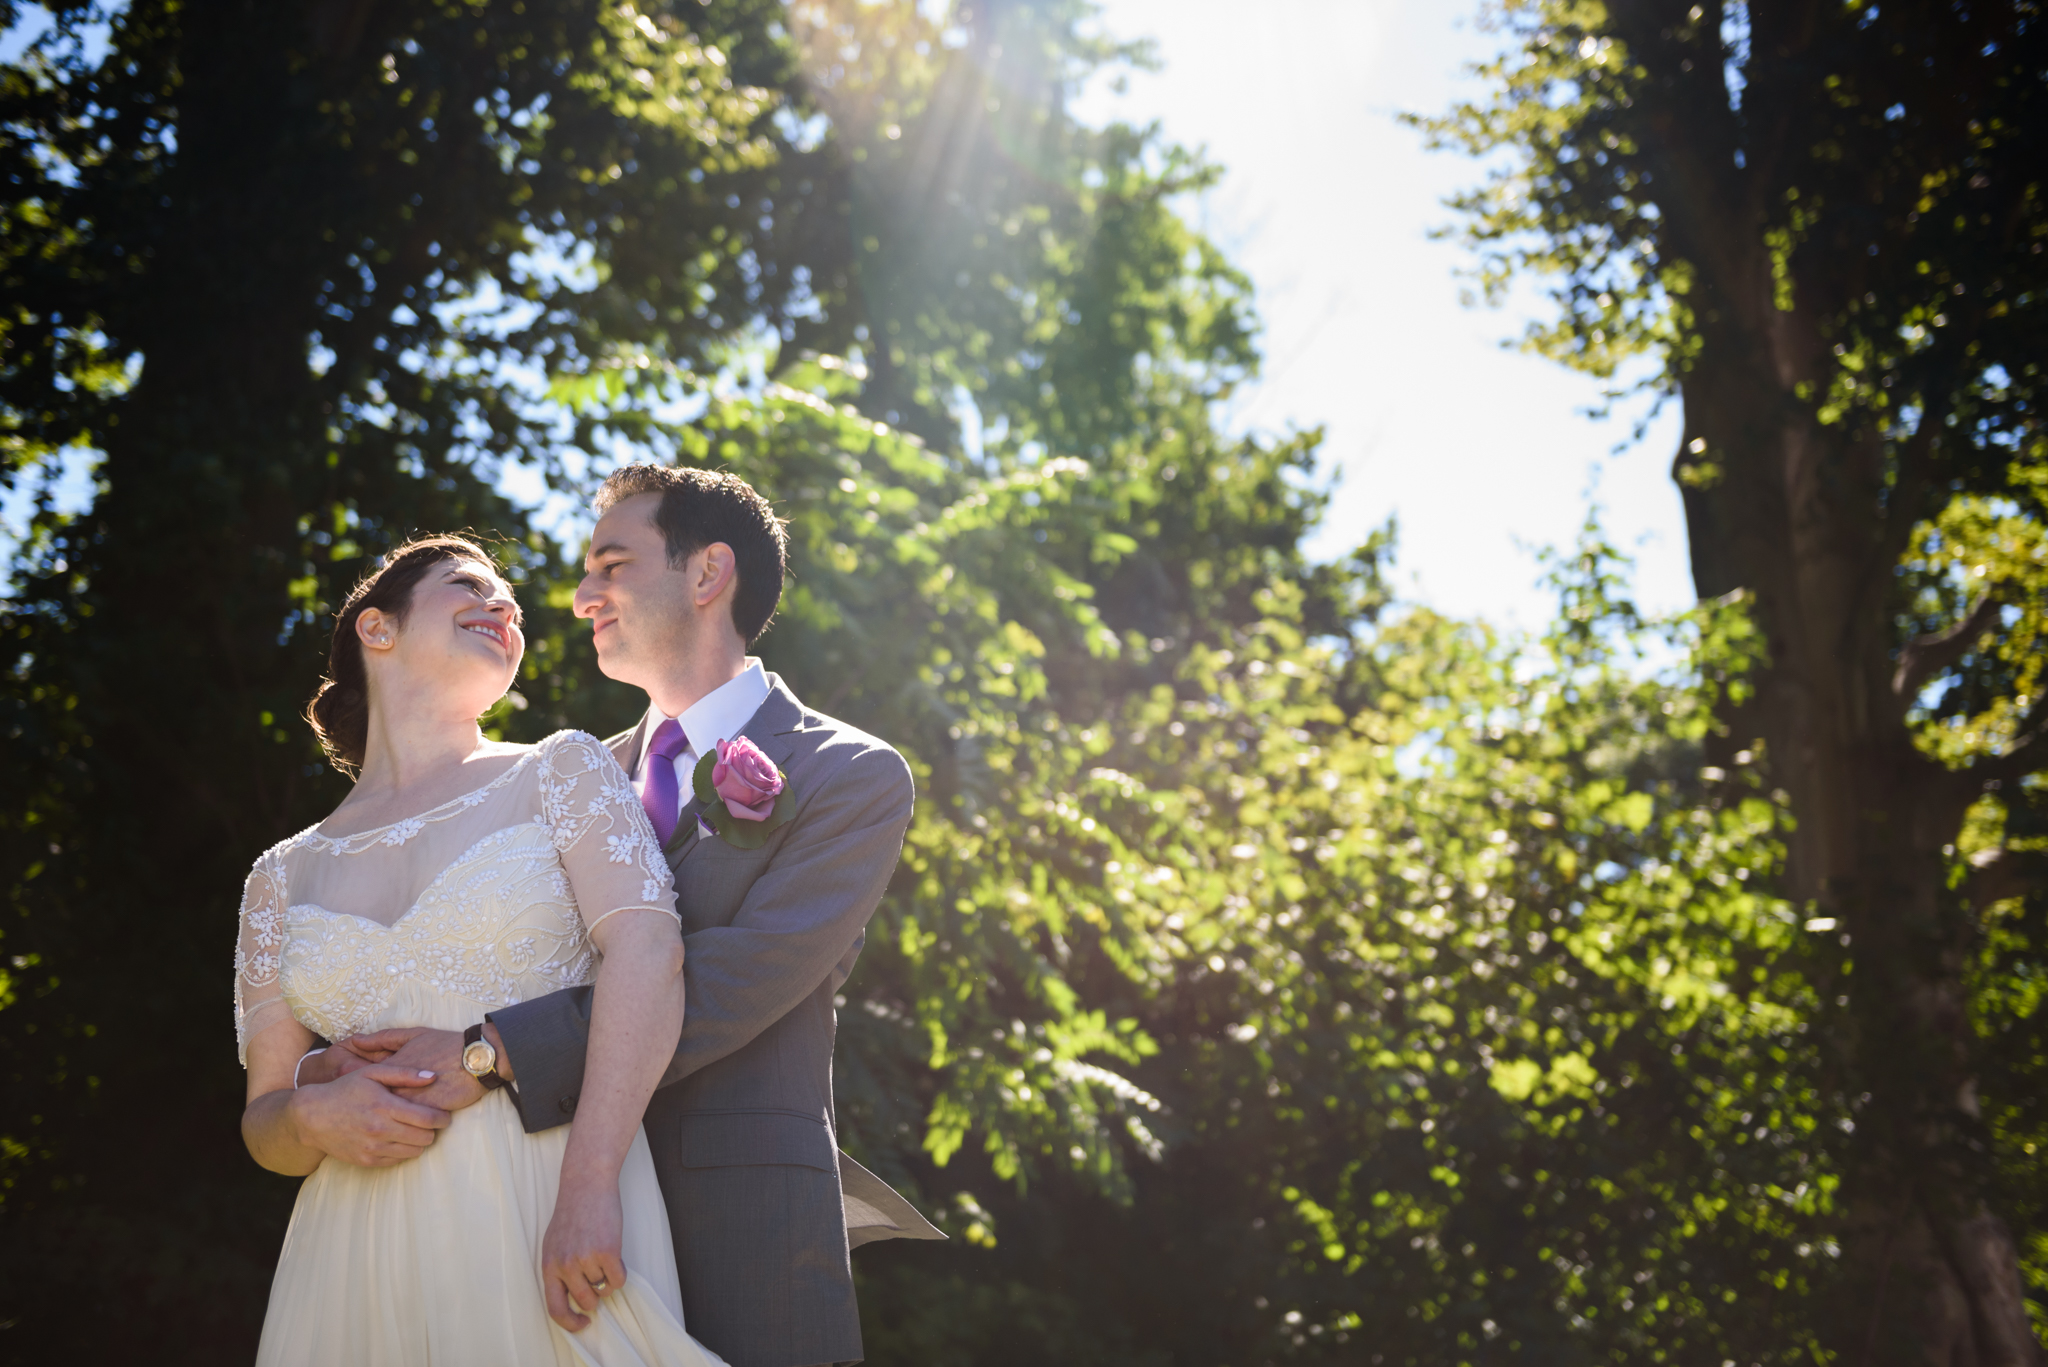 Katie & Eric´s Wedding by Romina Hendlin_001.jpg